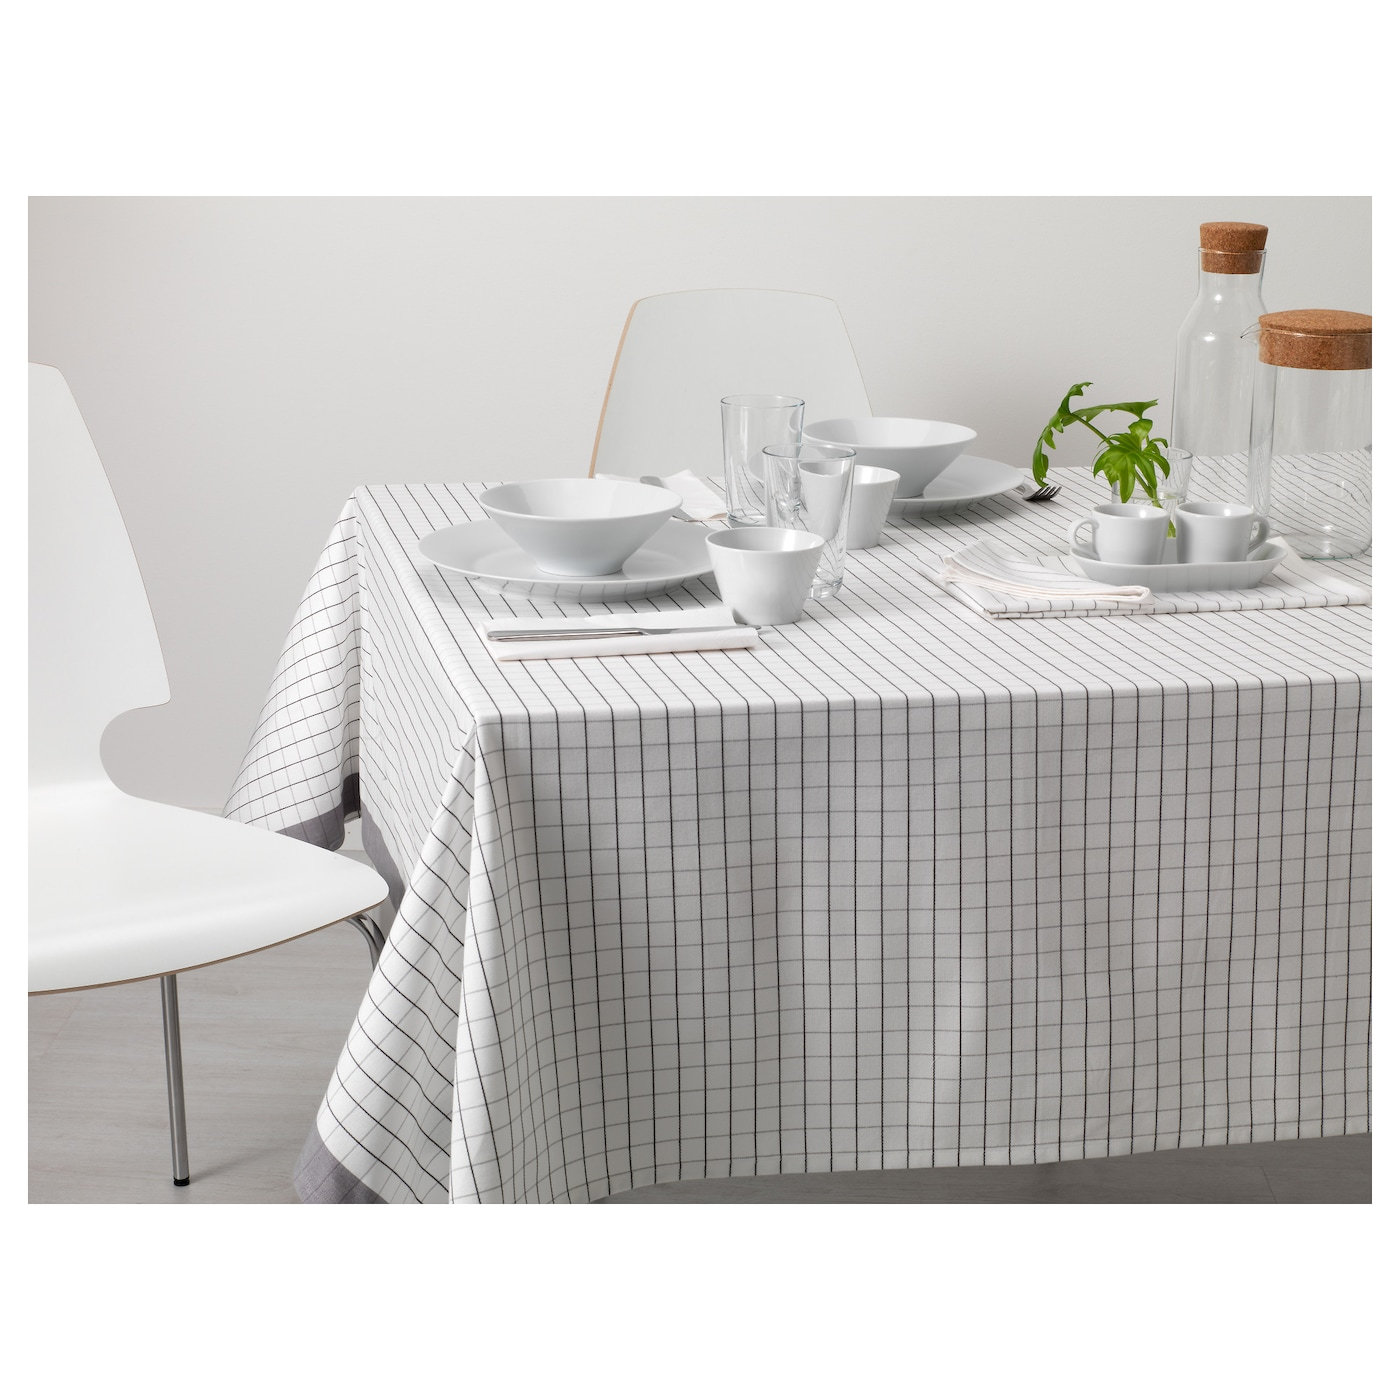 ikea 365 nappe blanc gris 145x240 cm ikea. Black Bedroom Furniture Sets. Home Design Ideas